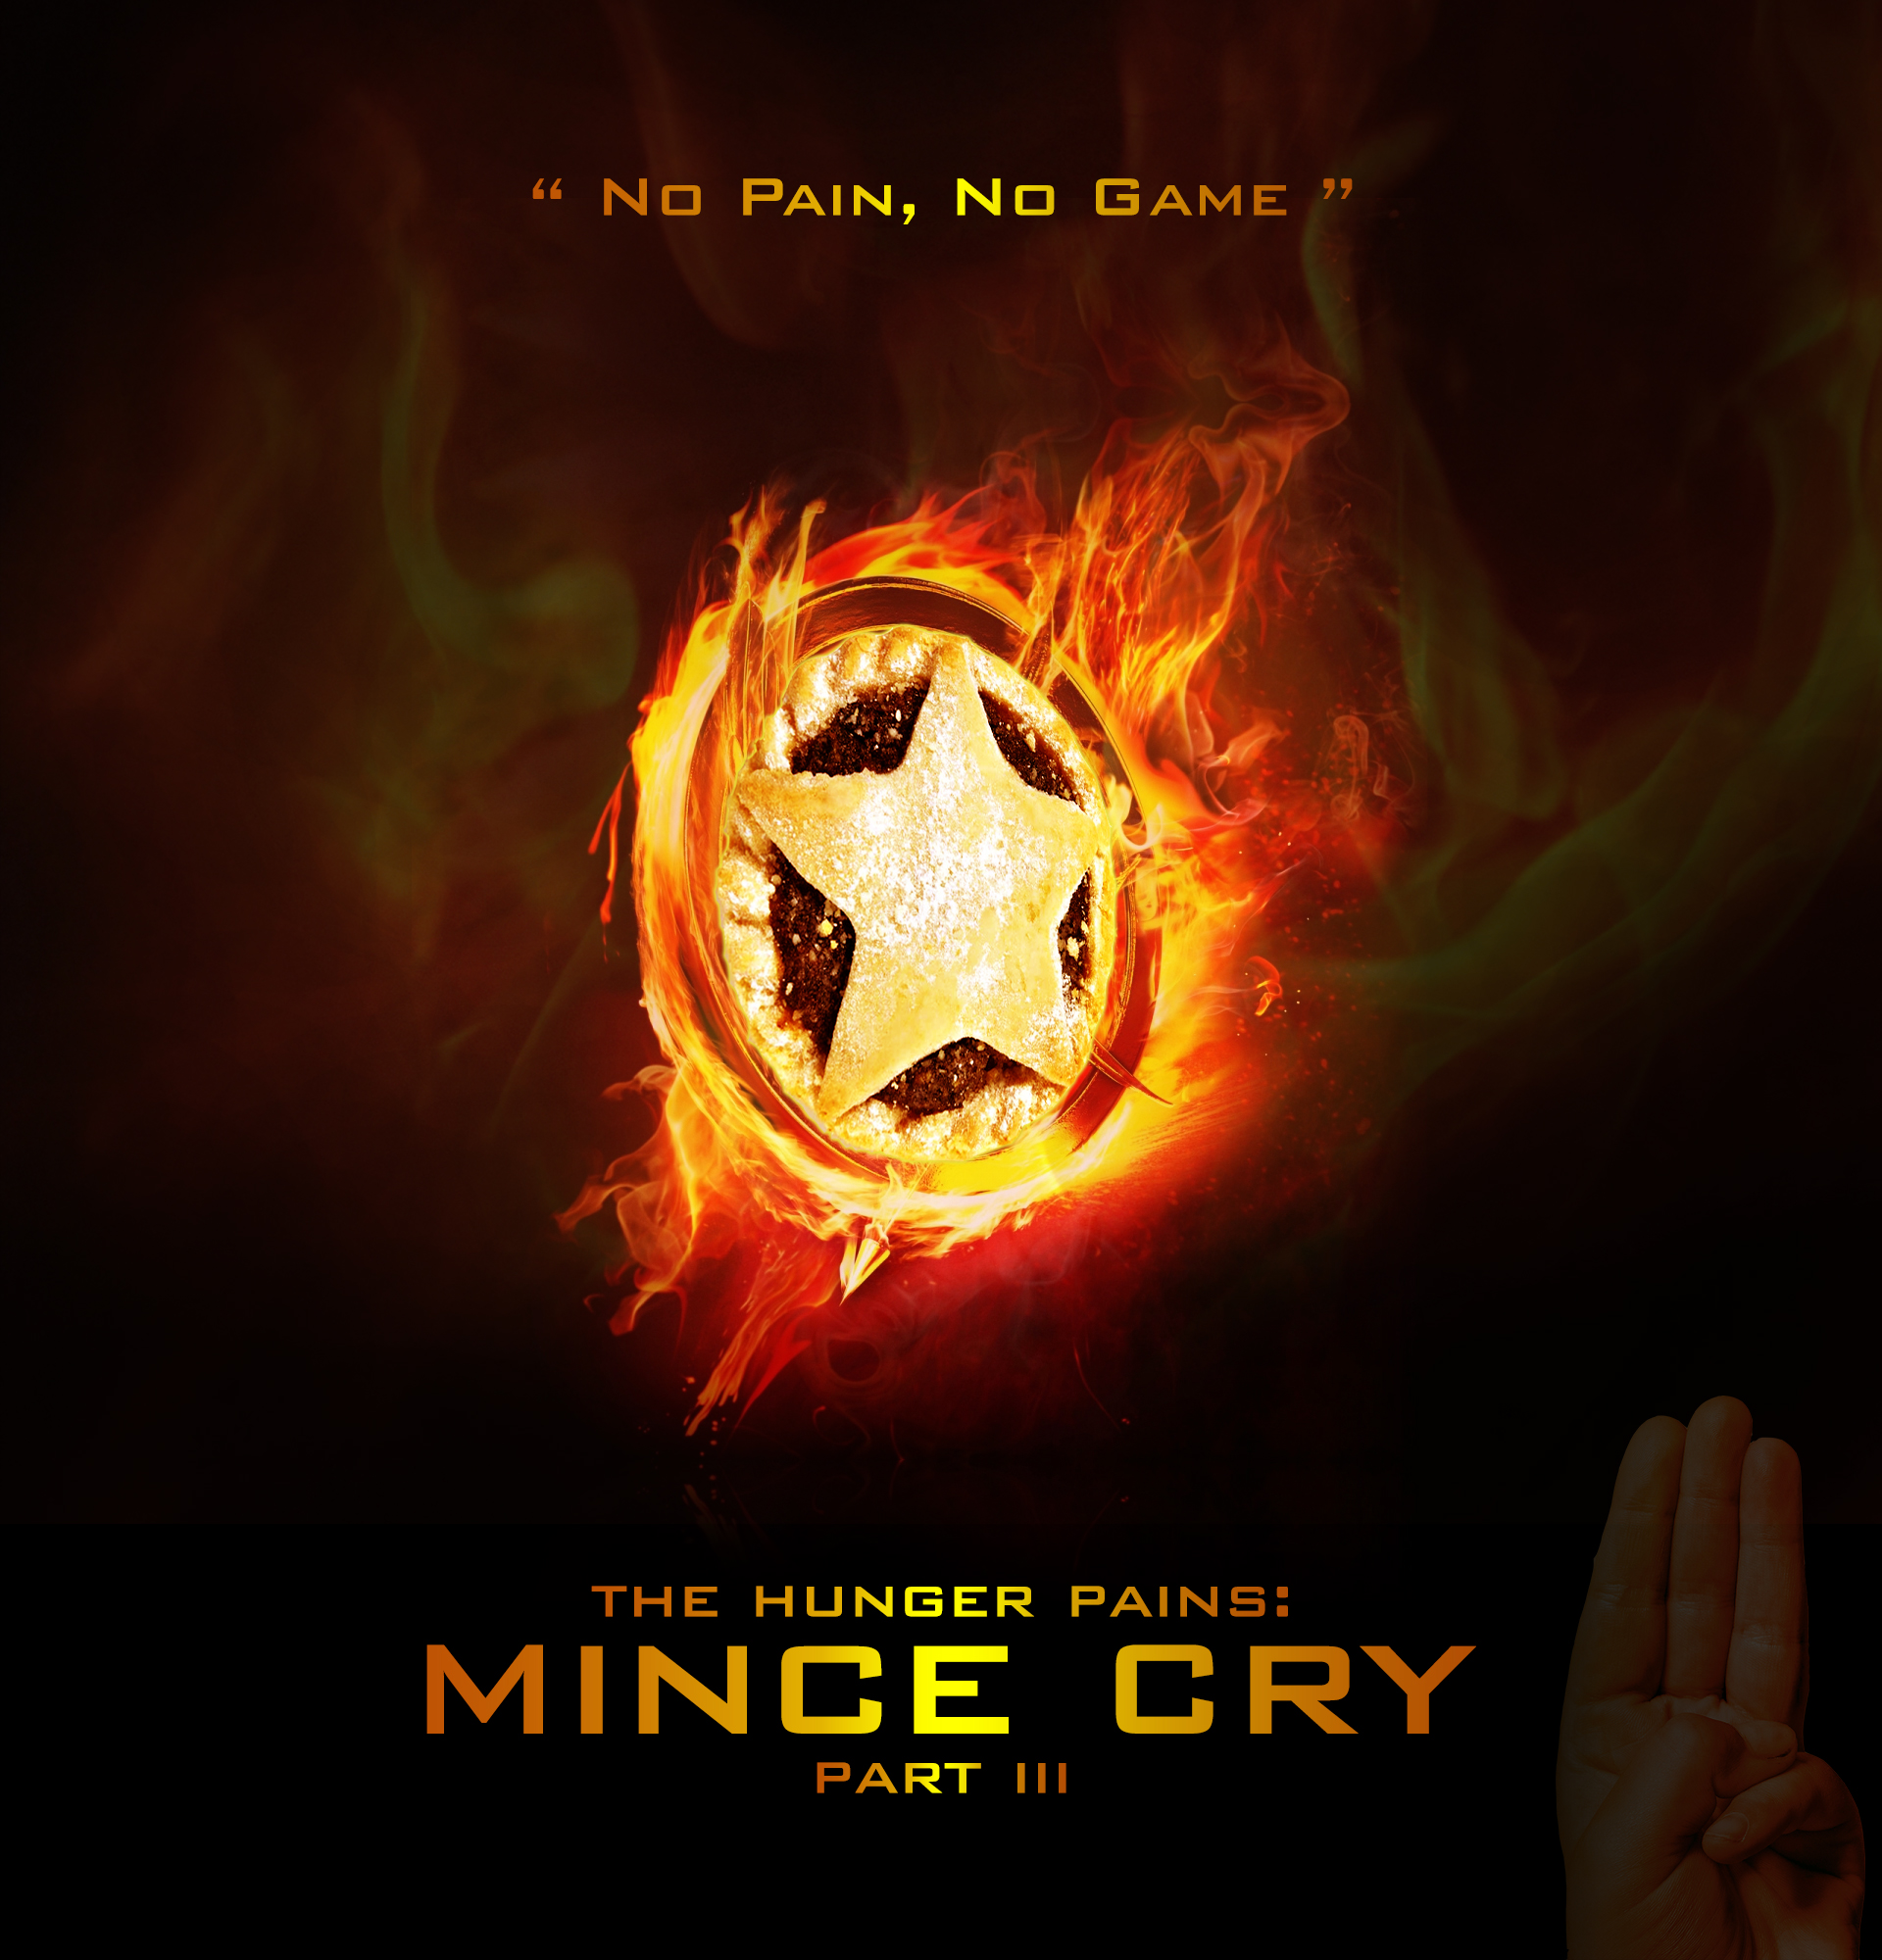 Mince Cry part 3: The Hunger Pains